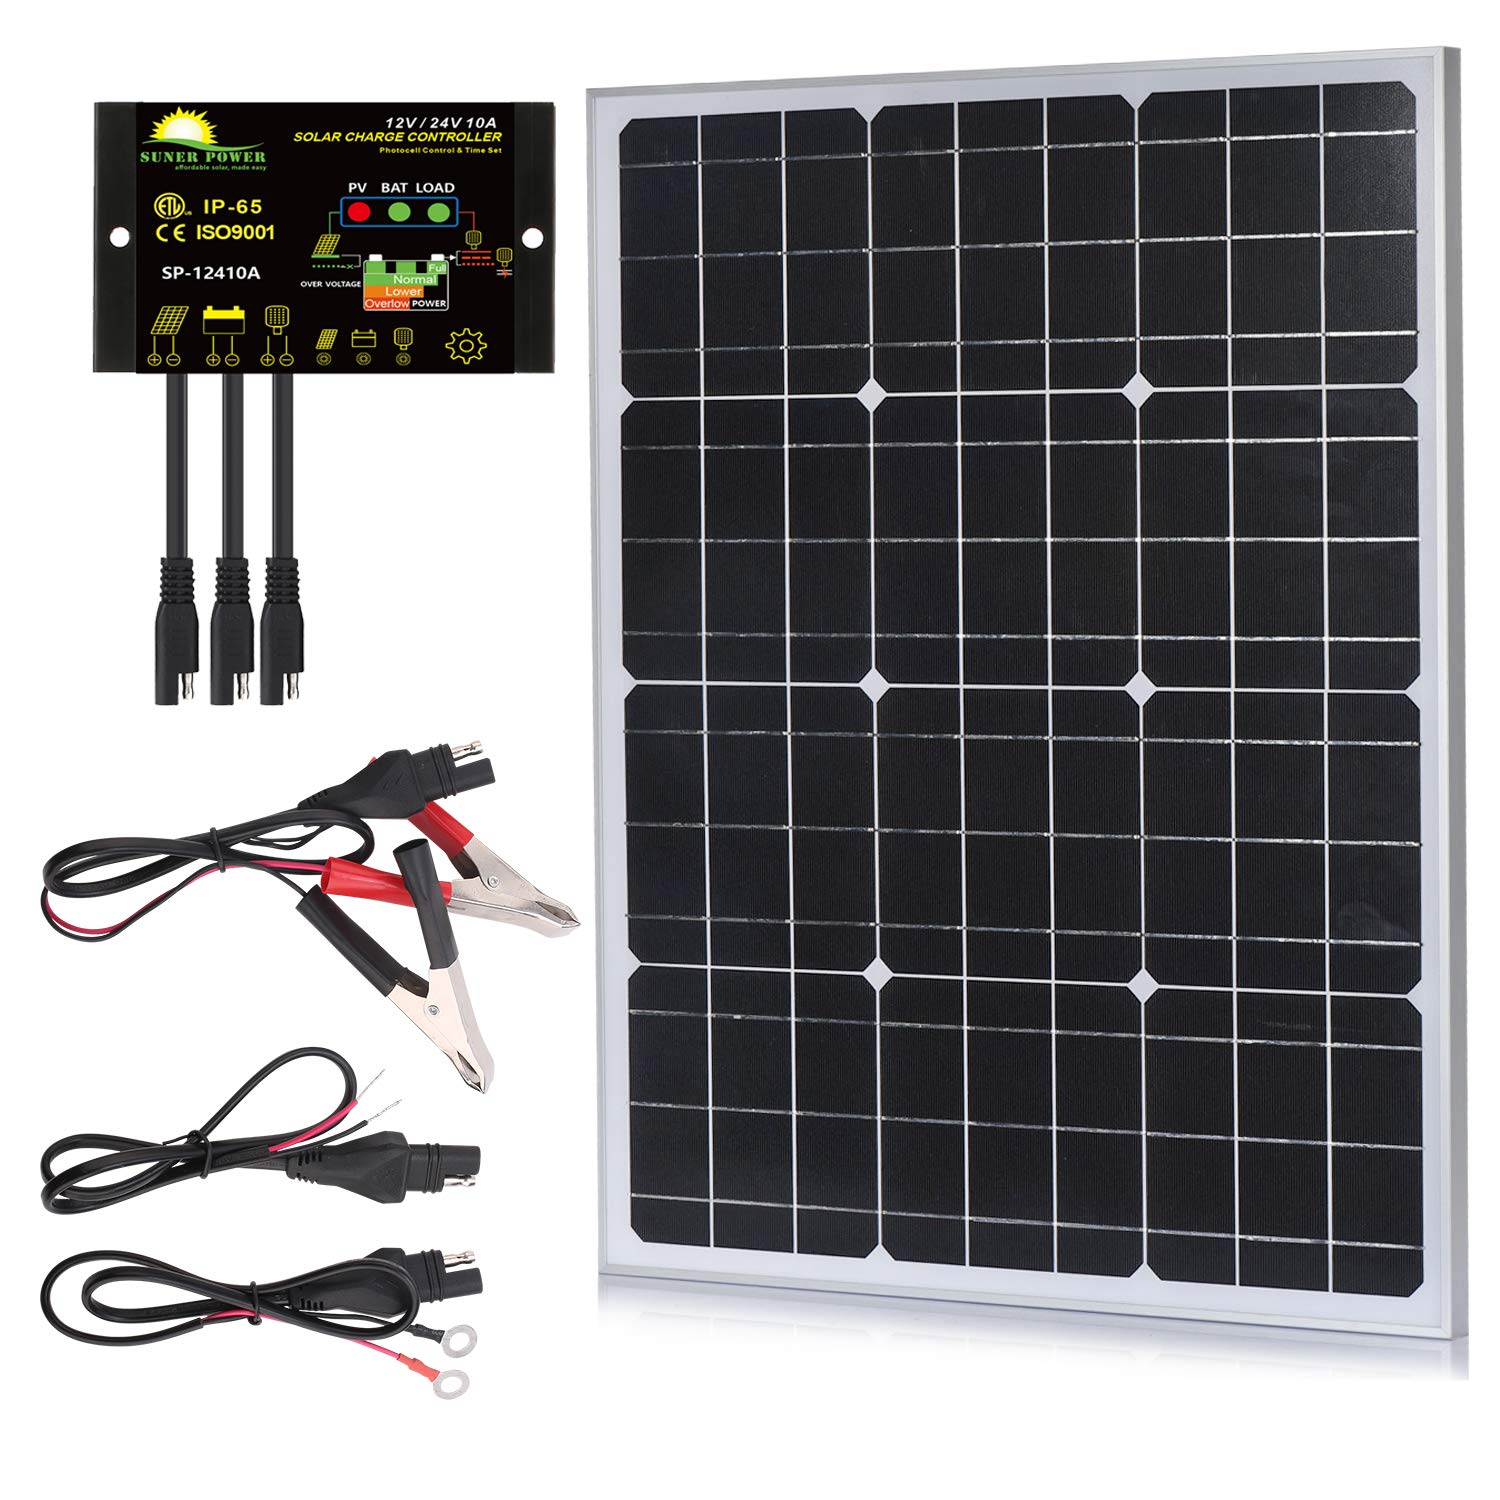 SUNER POWER 50 Watts Mono Crystalline 12V Off Grid Solar Panel Kit - Waterproof 50W Solar Panel + Photocell 10A Solar Charge Controller with Work Time Setting + SAE Connection Cable Kits by SUNER POWER